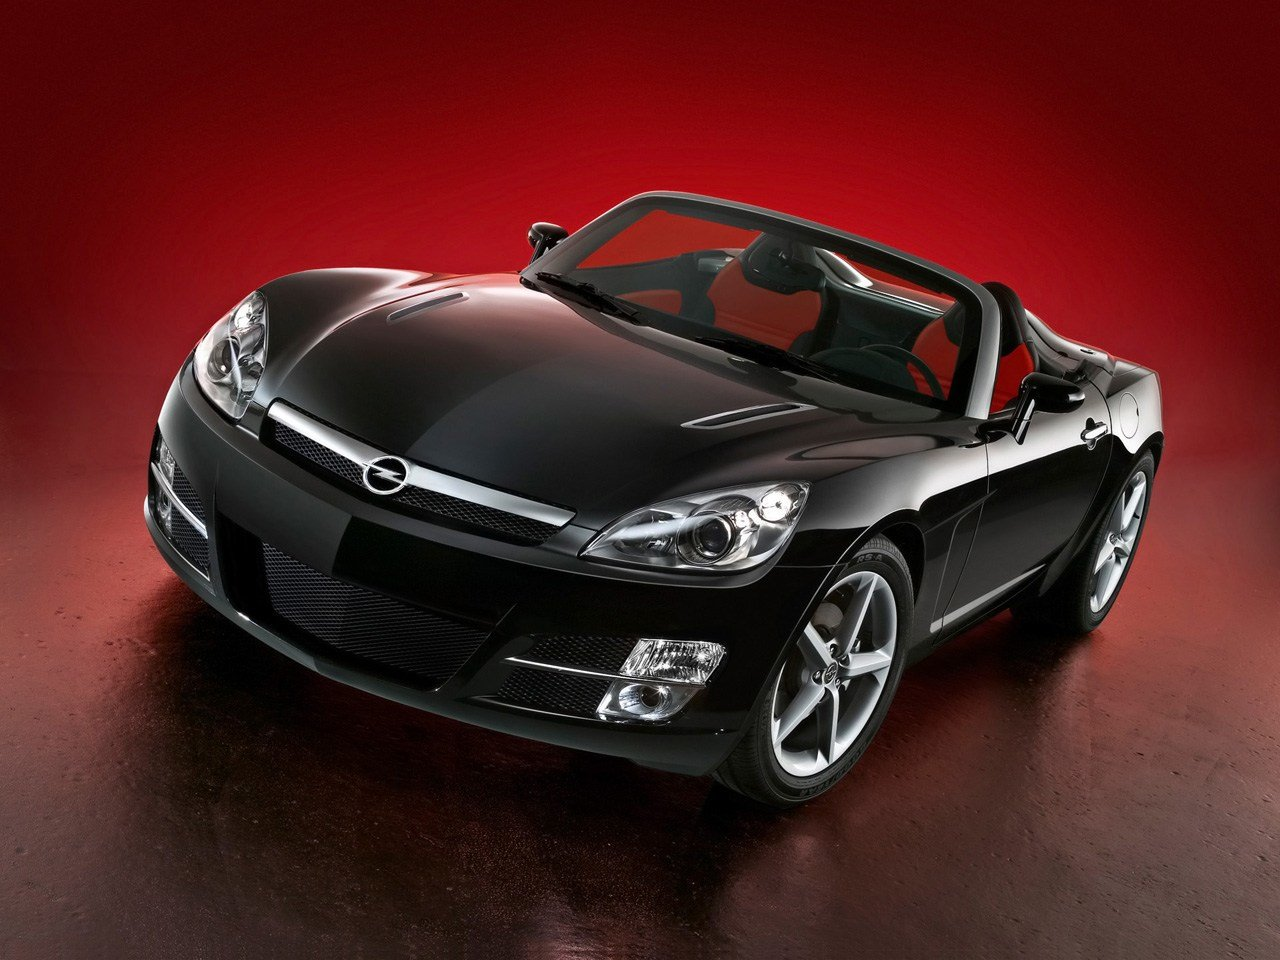 Latest 2007 Opel Gt Pictures History Value Research News Free Download